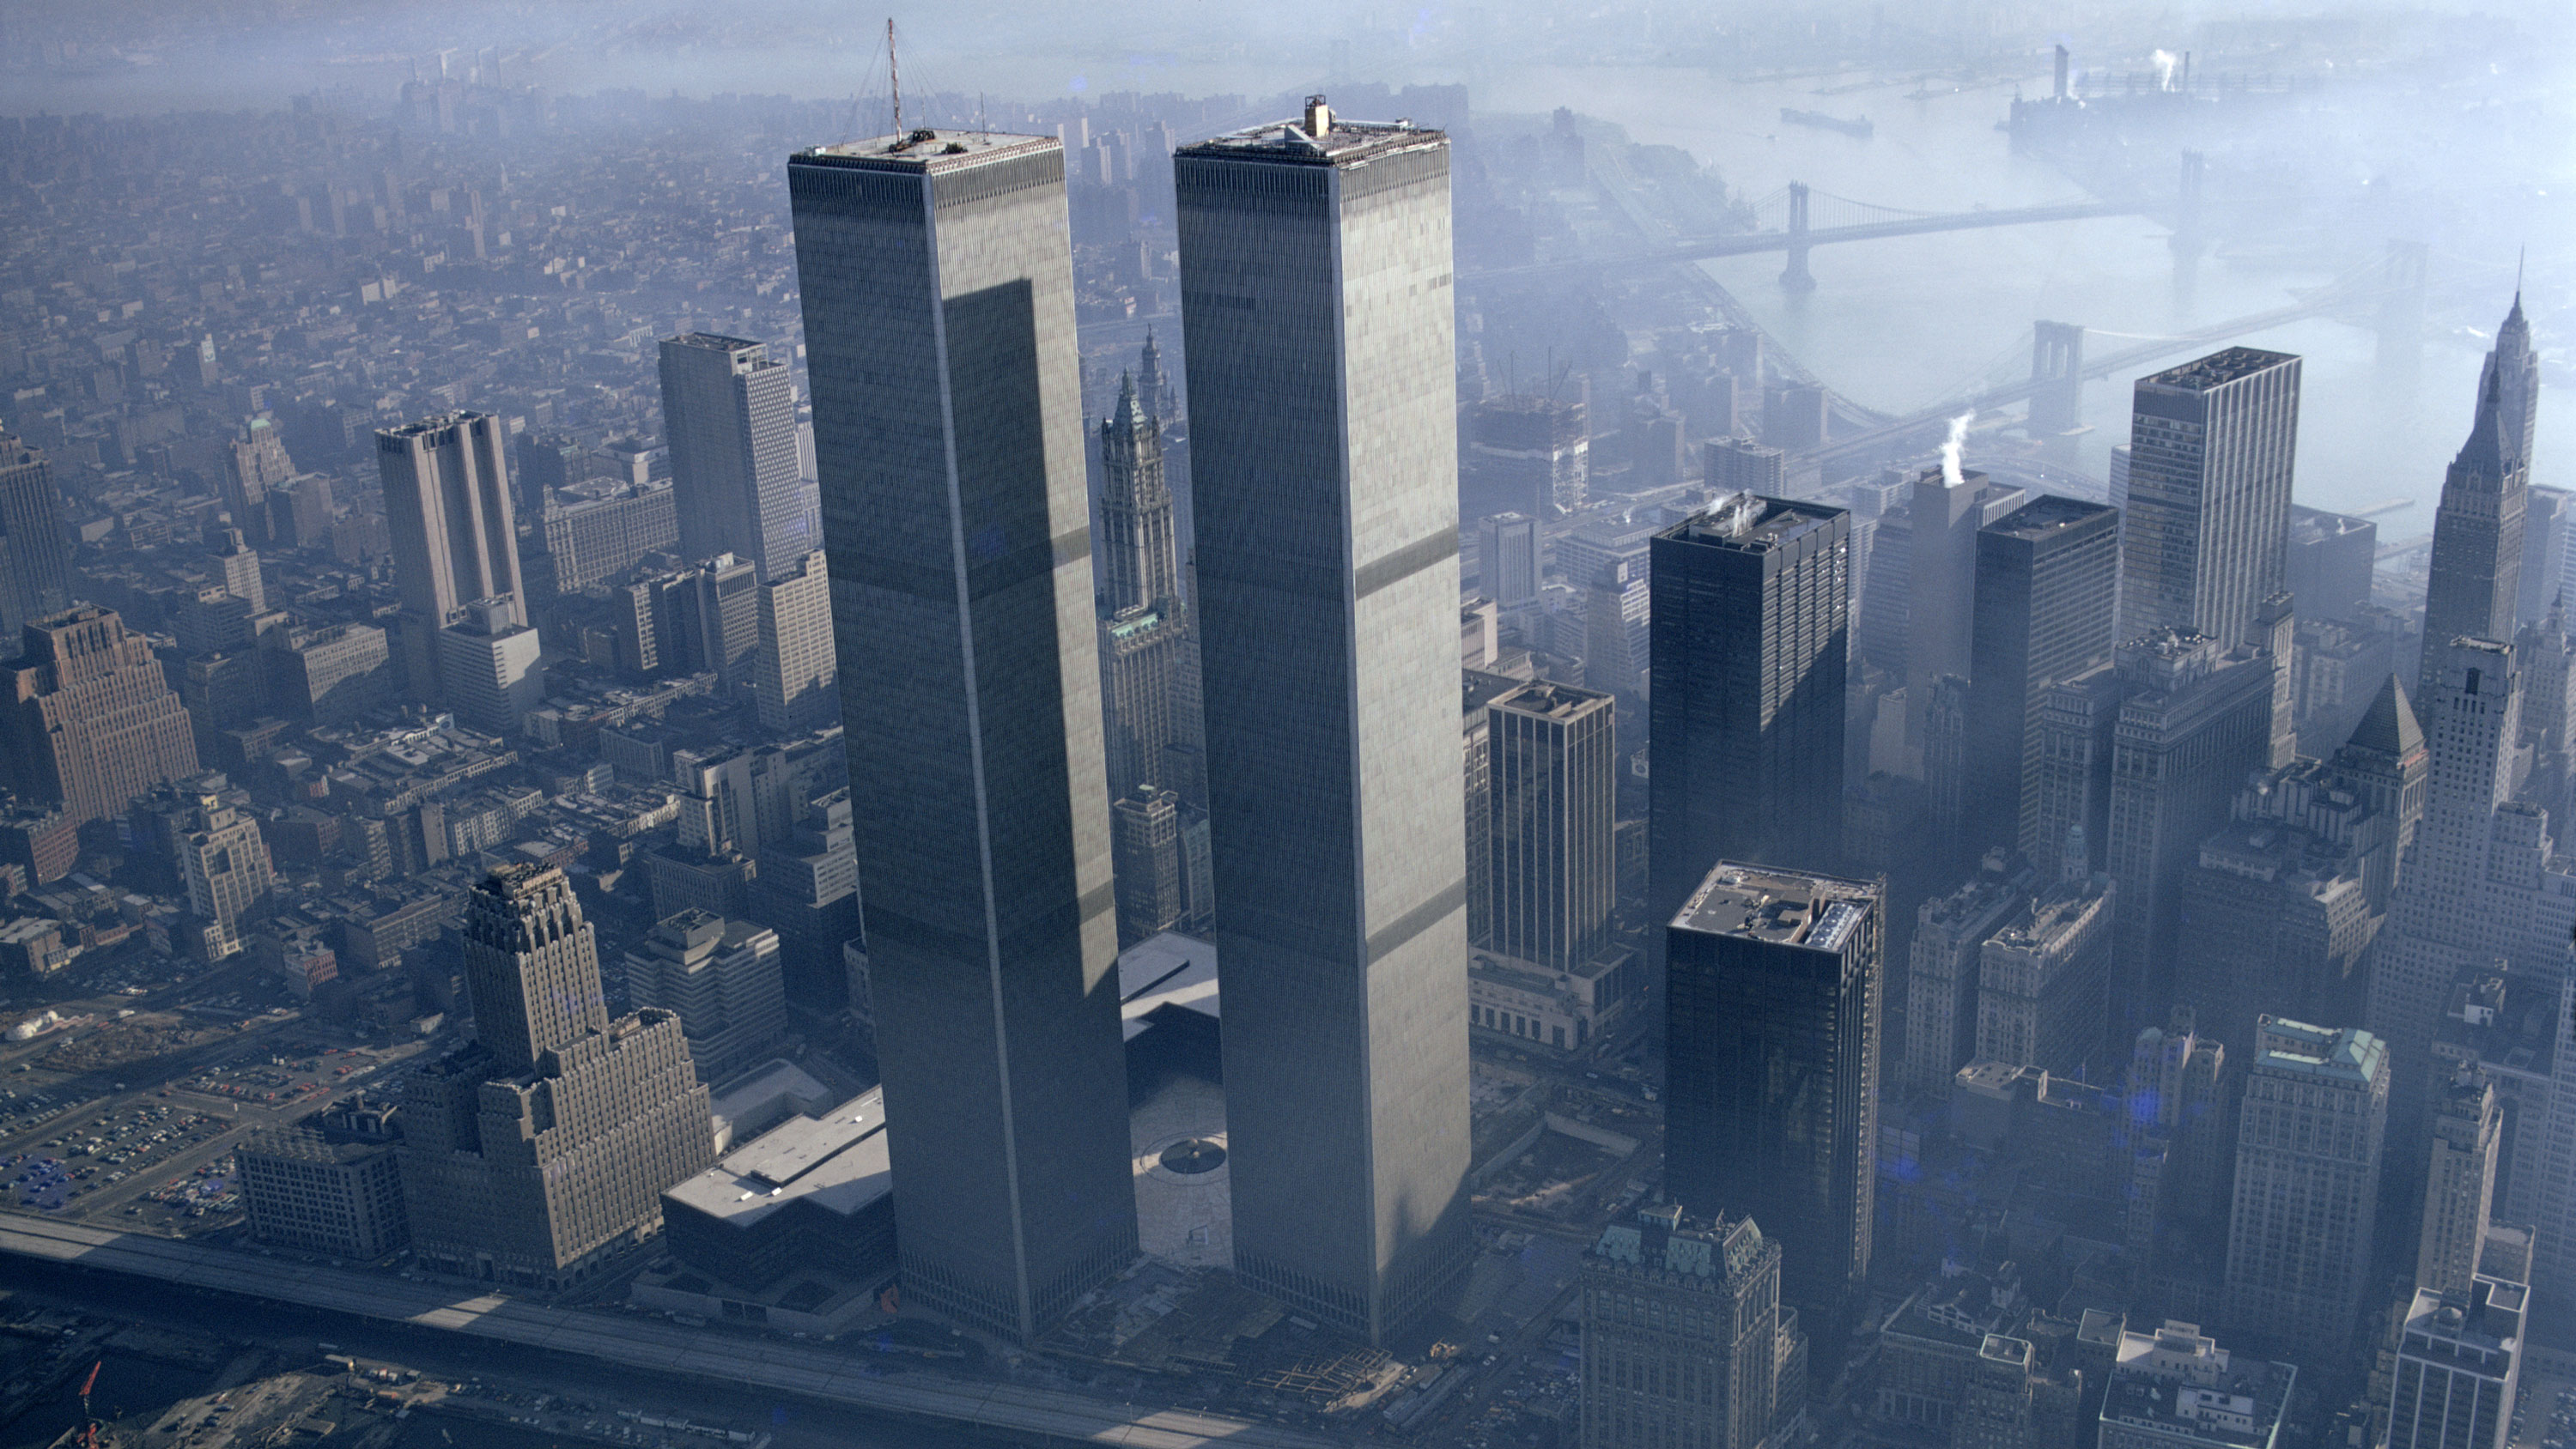 How the Design of the World Trade Center Claimed Lives on 9/11